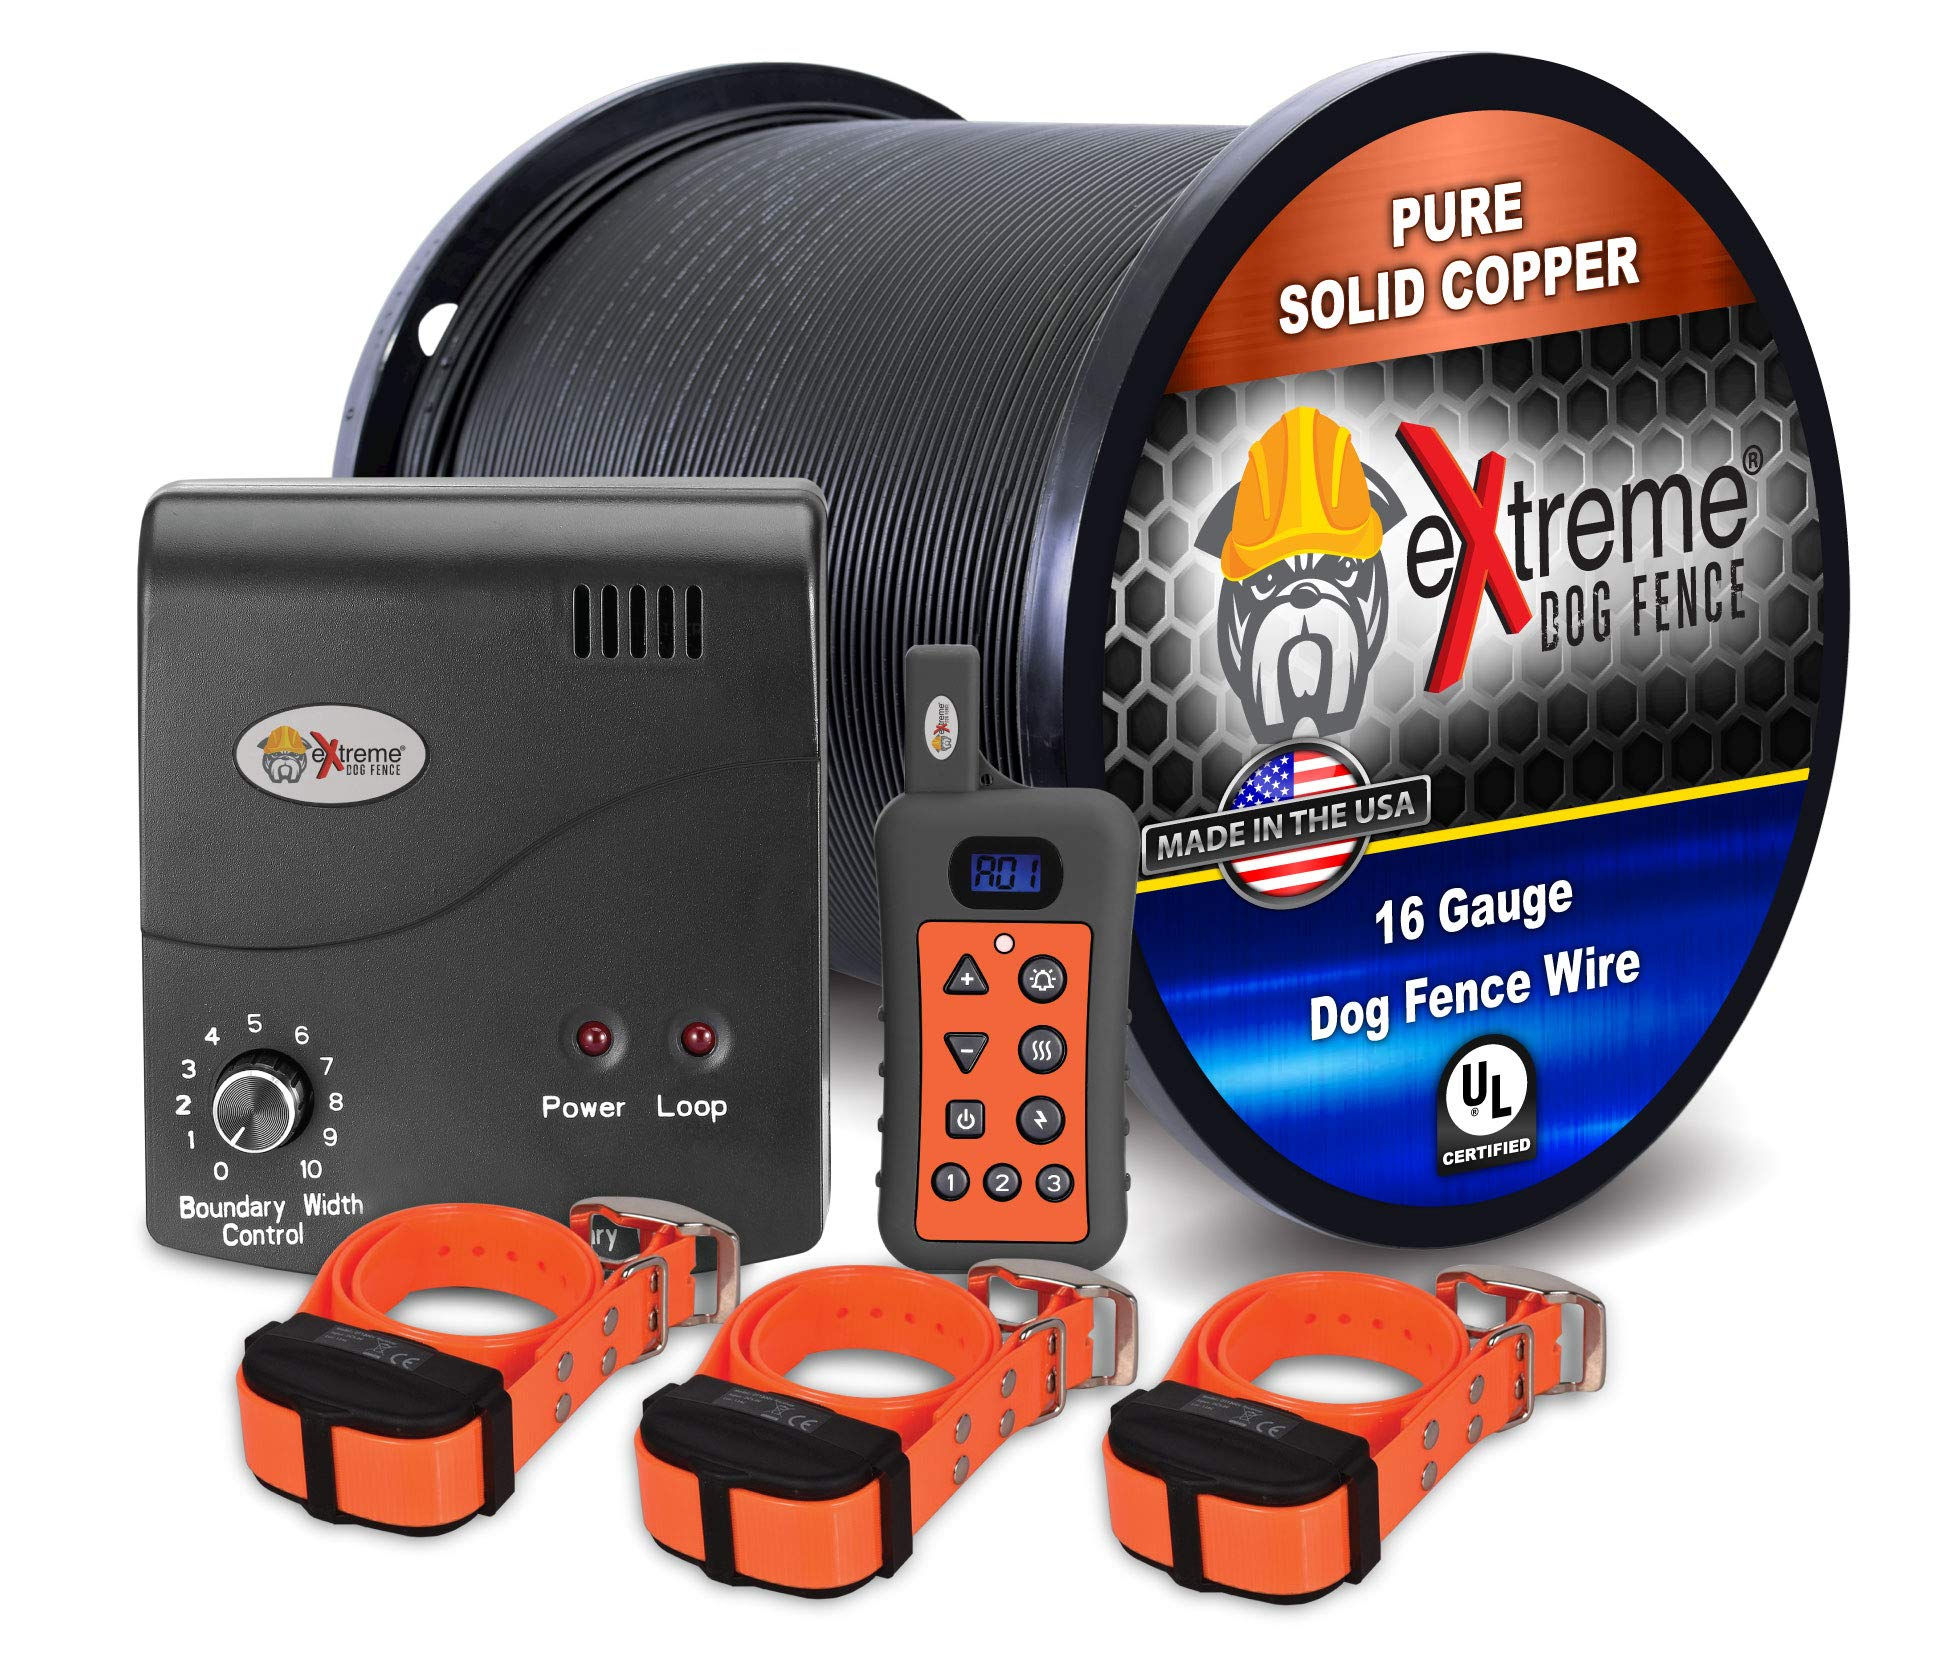 Electric Dog Fence + Remote Trainer - 3 Dog / 1000' of 16 Gauge Underground Dog Fence Wire (Up to 1 Acre) - Dual Solution to Contain and Train Your Dog(s) with a Single Collar by Extreme Dog Fence